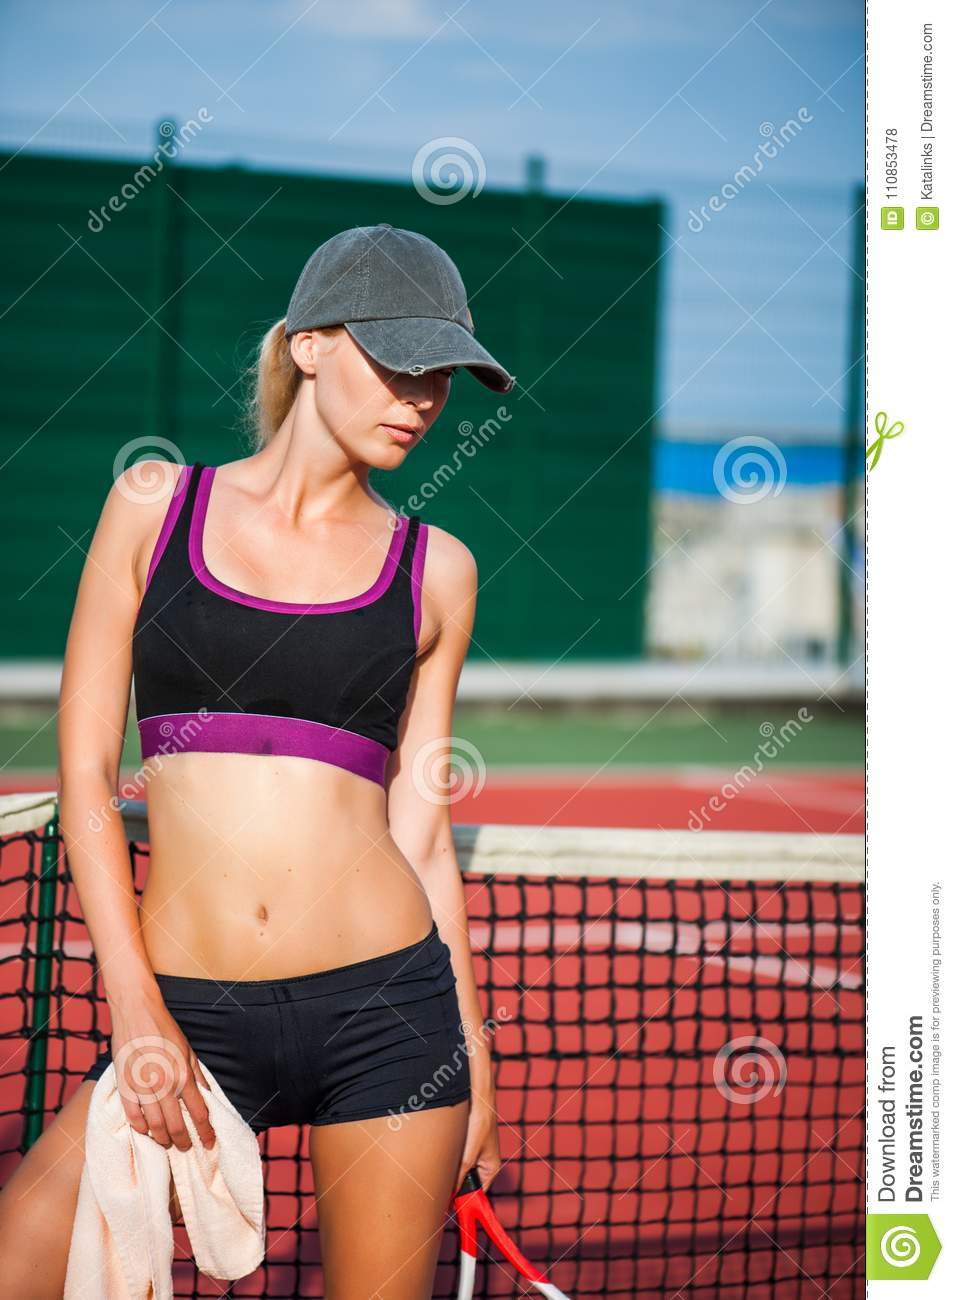 4cc834b9e11a4 Young beautiful Woman tennis player wearing cap having rest while standing  on tennis court after match. Wipe the sweat with a towel